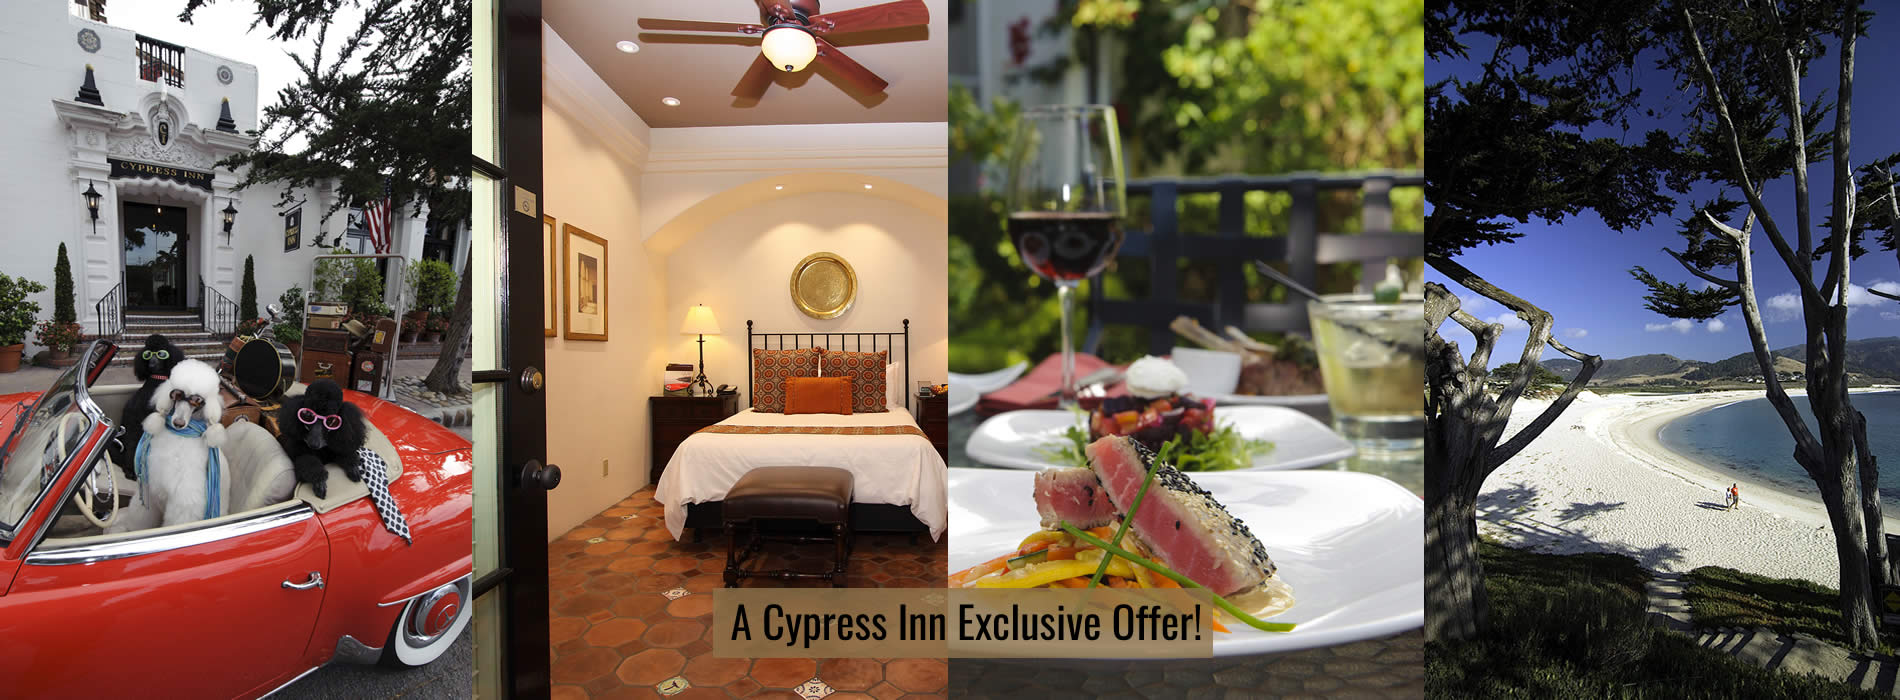 cypress inn exclusive offer